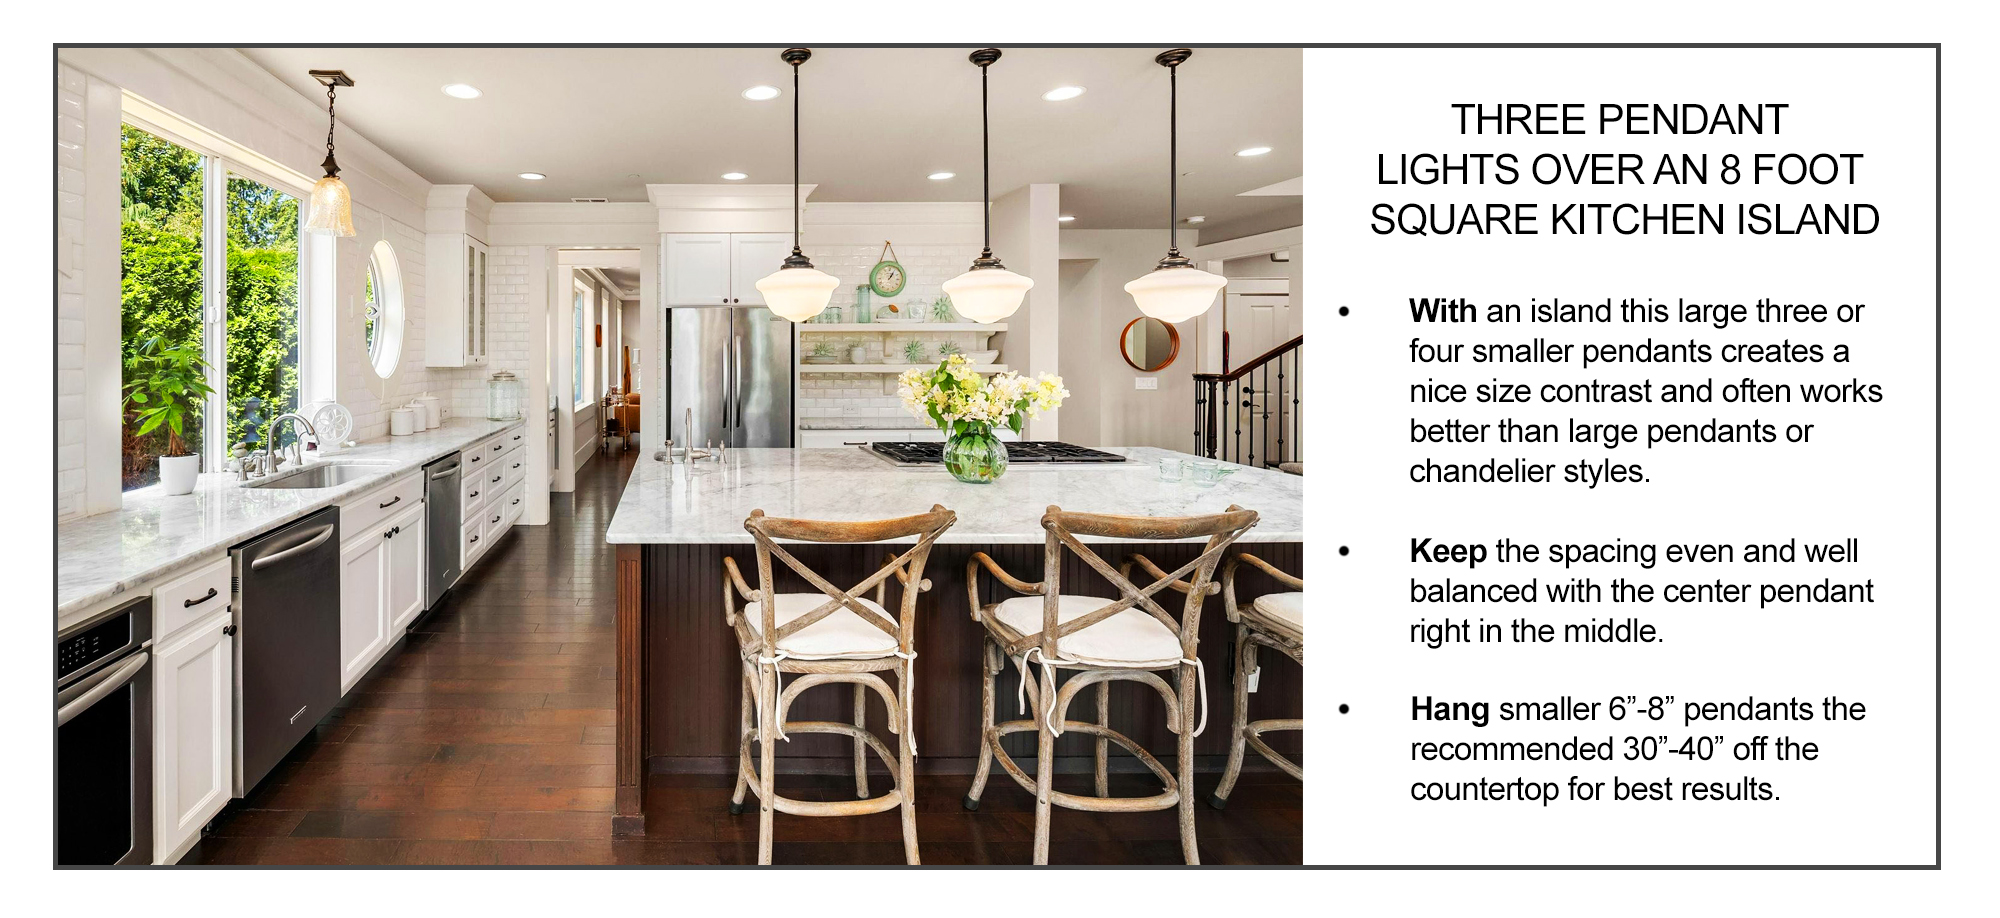 how to space three pendant lights over a kitchen island inforgraphic